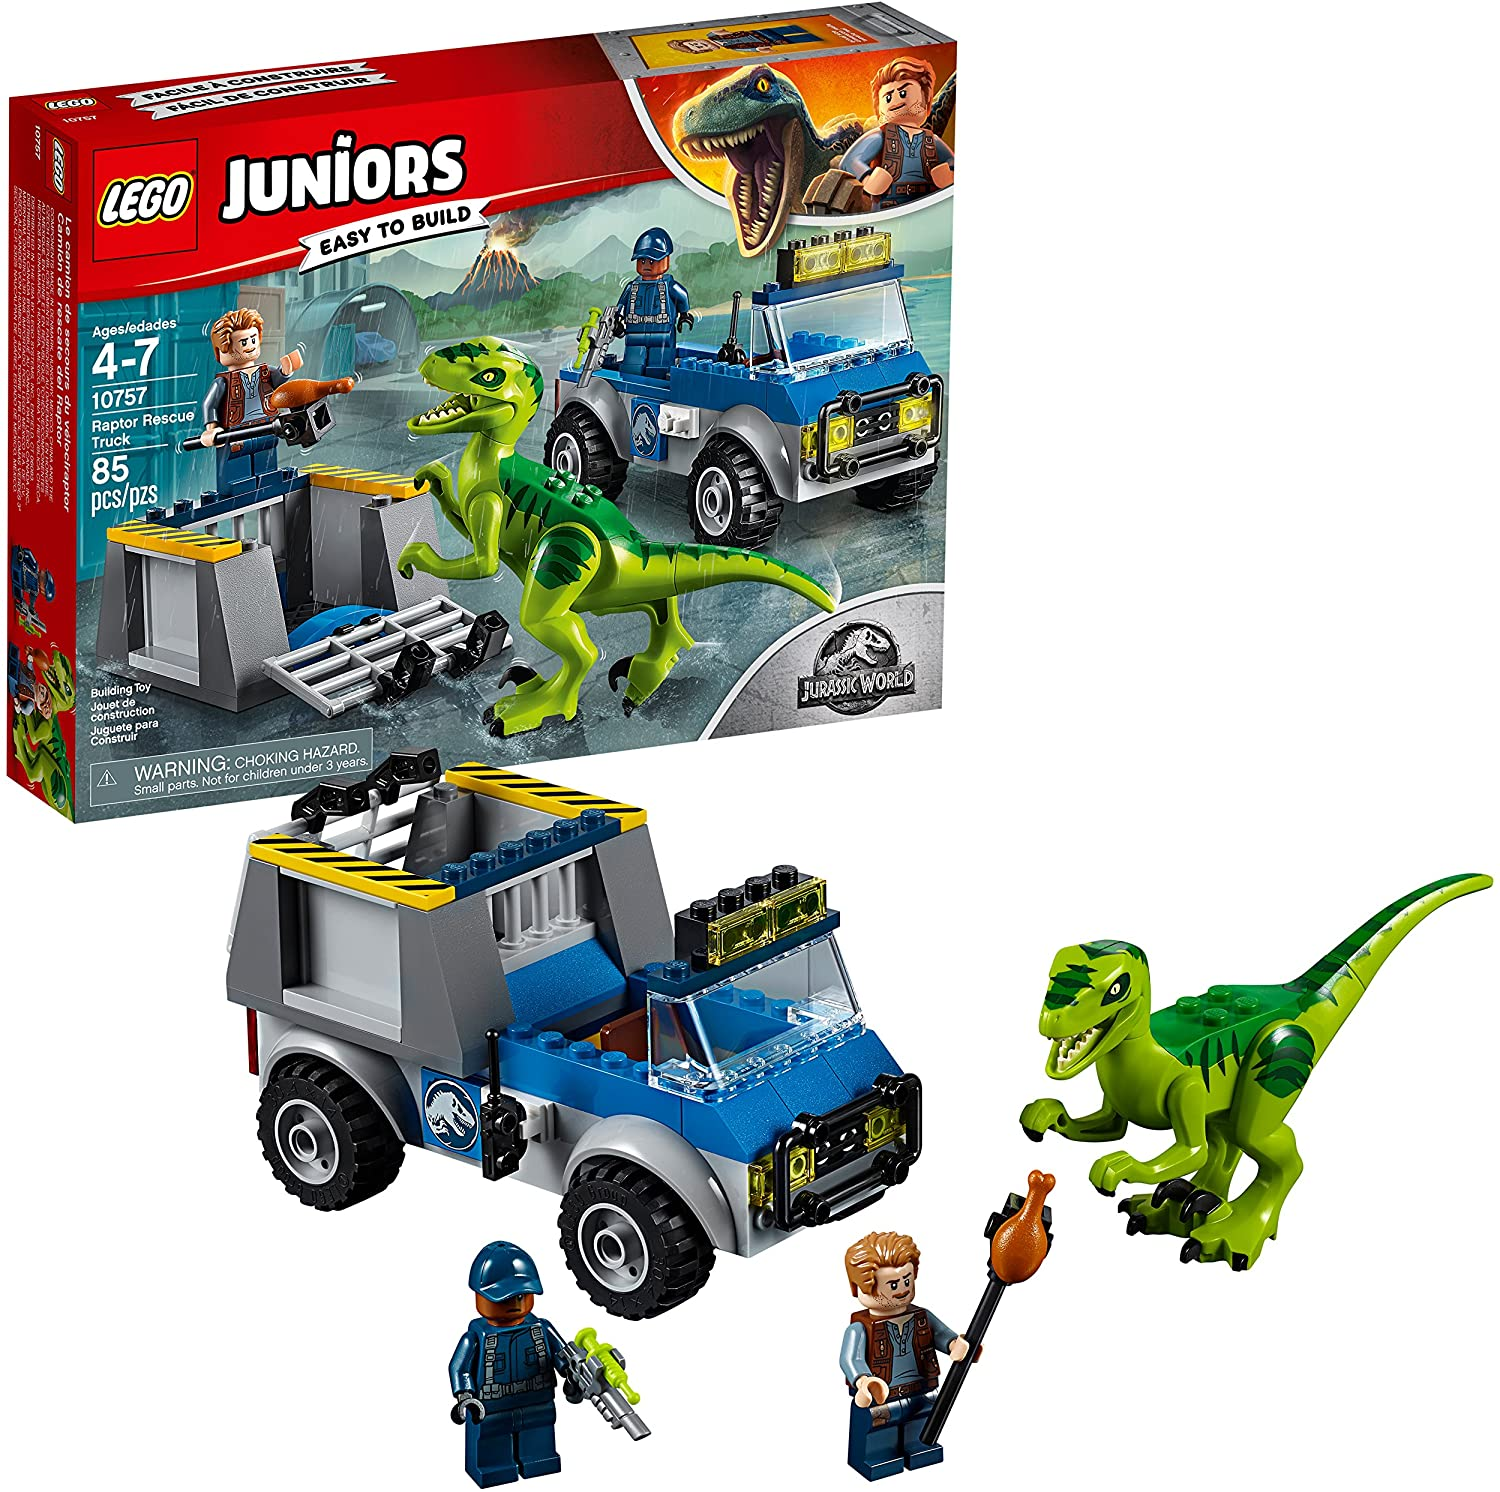 Lego Jurassic World Raptor Rescue Truck Building Kit 10757 (85 Pieces)